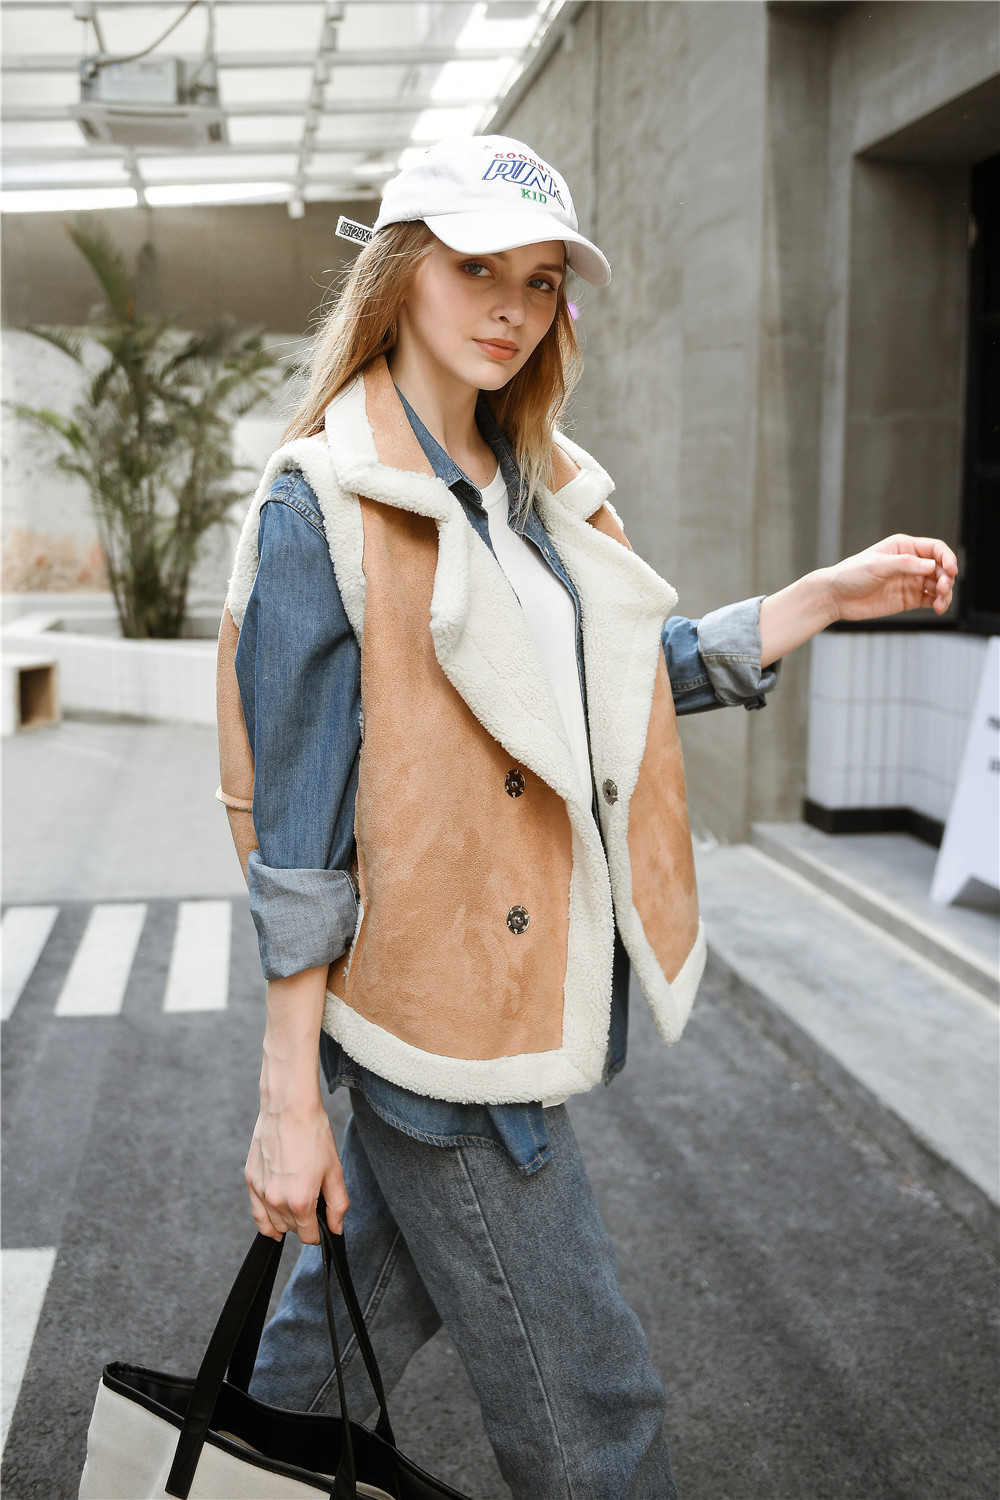 New Winter Women Shearling Vests Faux Suede Leather Sleeveless Jackets Female Faux Lambs Wool Waistcoats